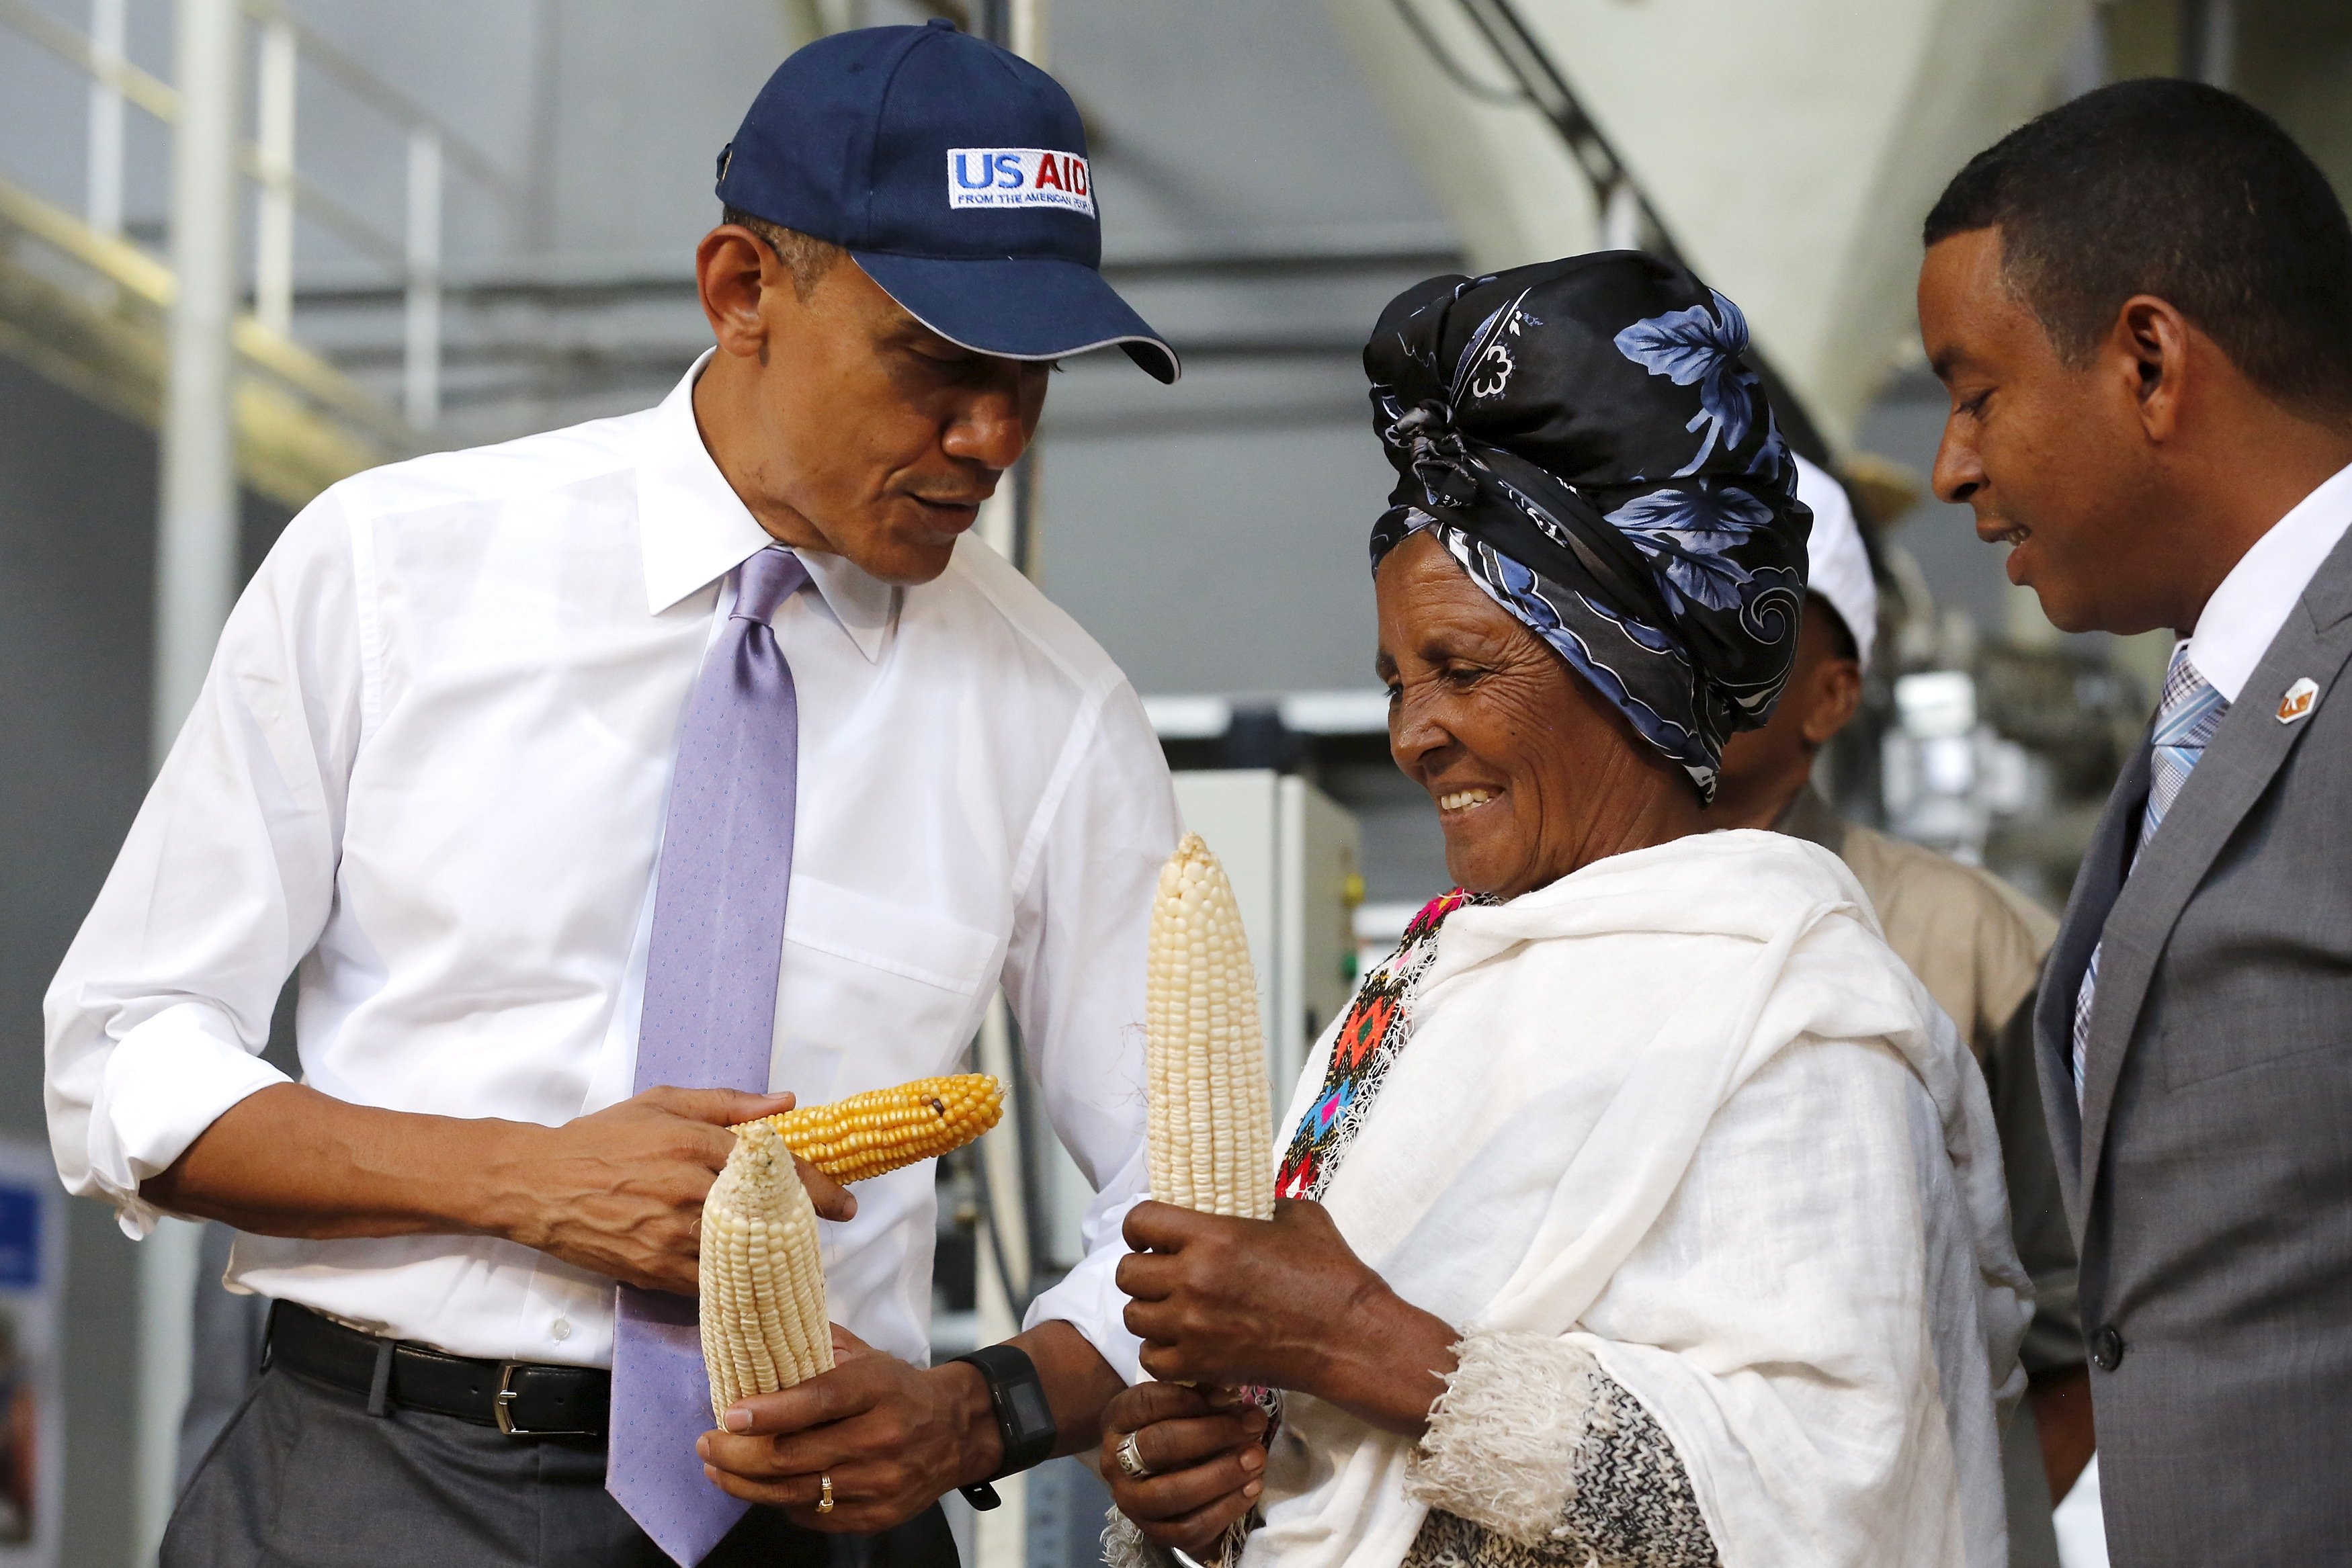 U.S. President Barack Obama (L) speaks with a farmer (2nd R) participating in the Feed the Future program as he tours the Faffa Food factory in Addis Ababa, Ethiopia July 28, 2015.